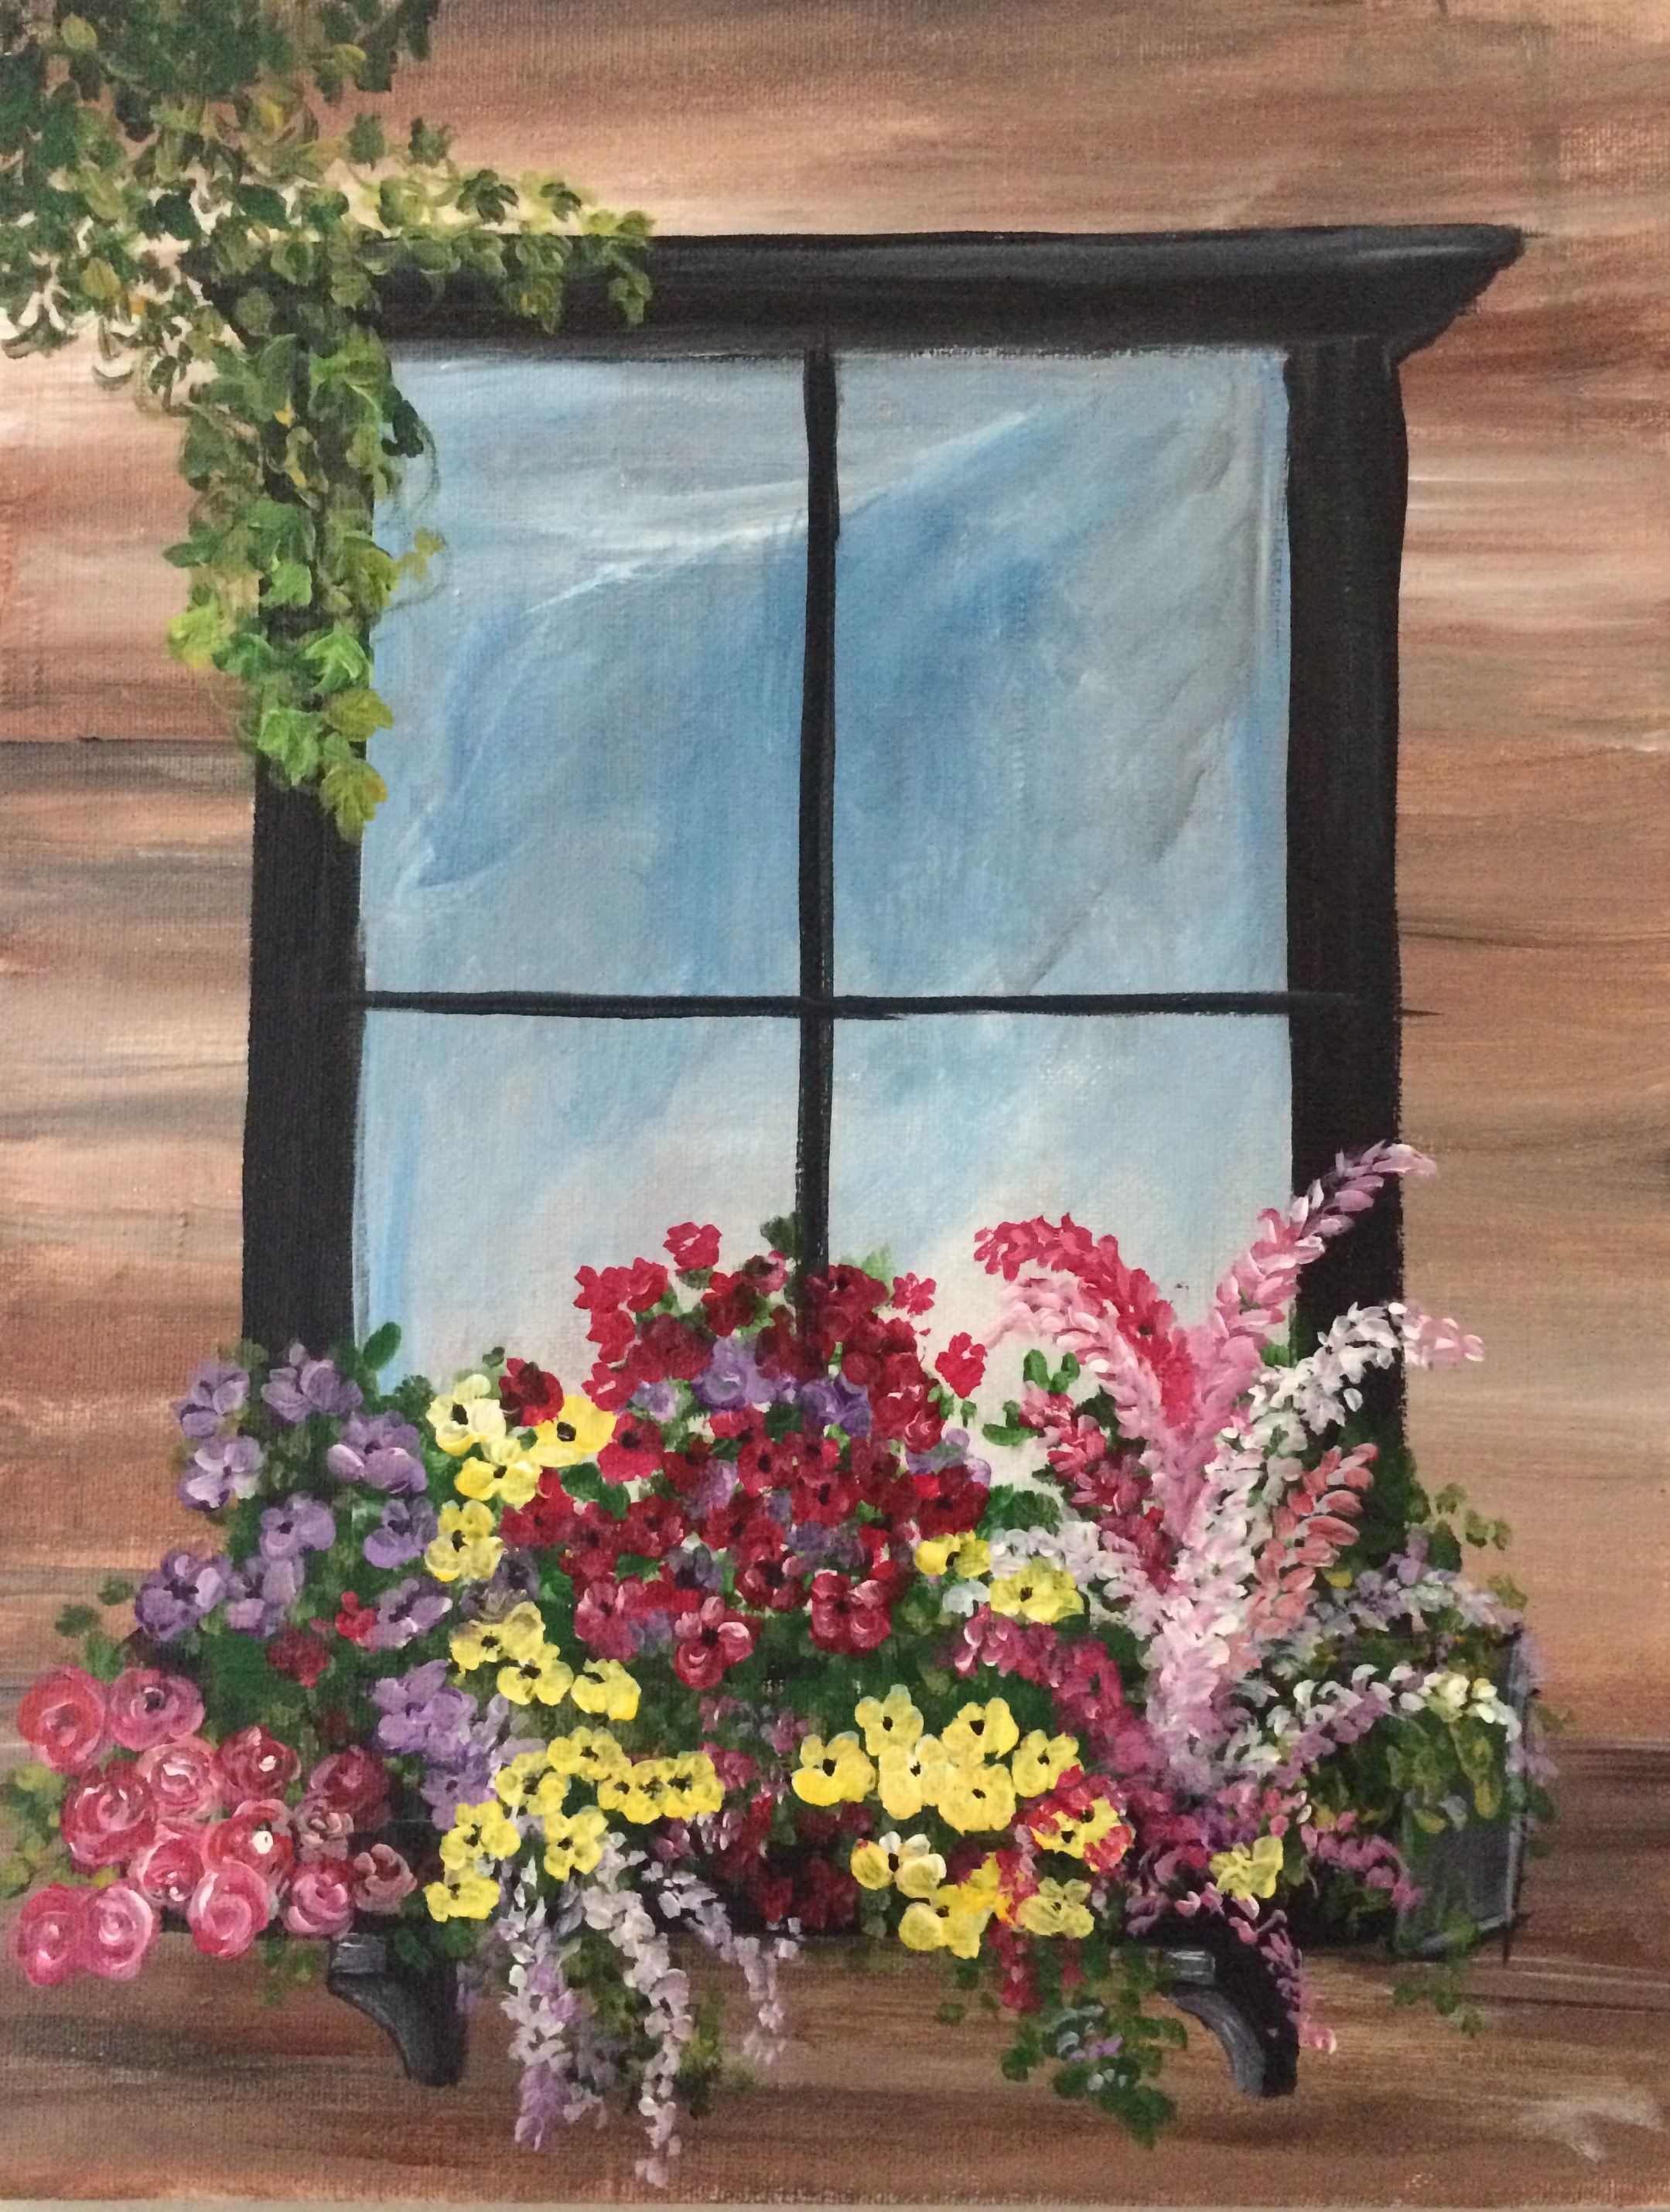 Blooming window in spring